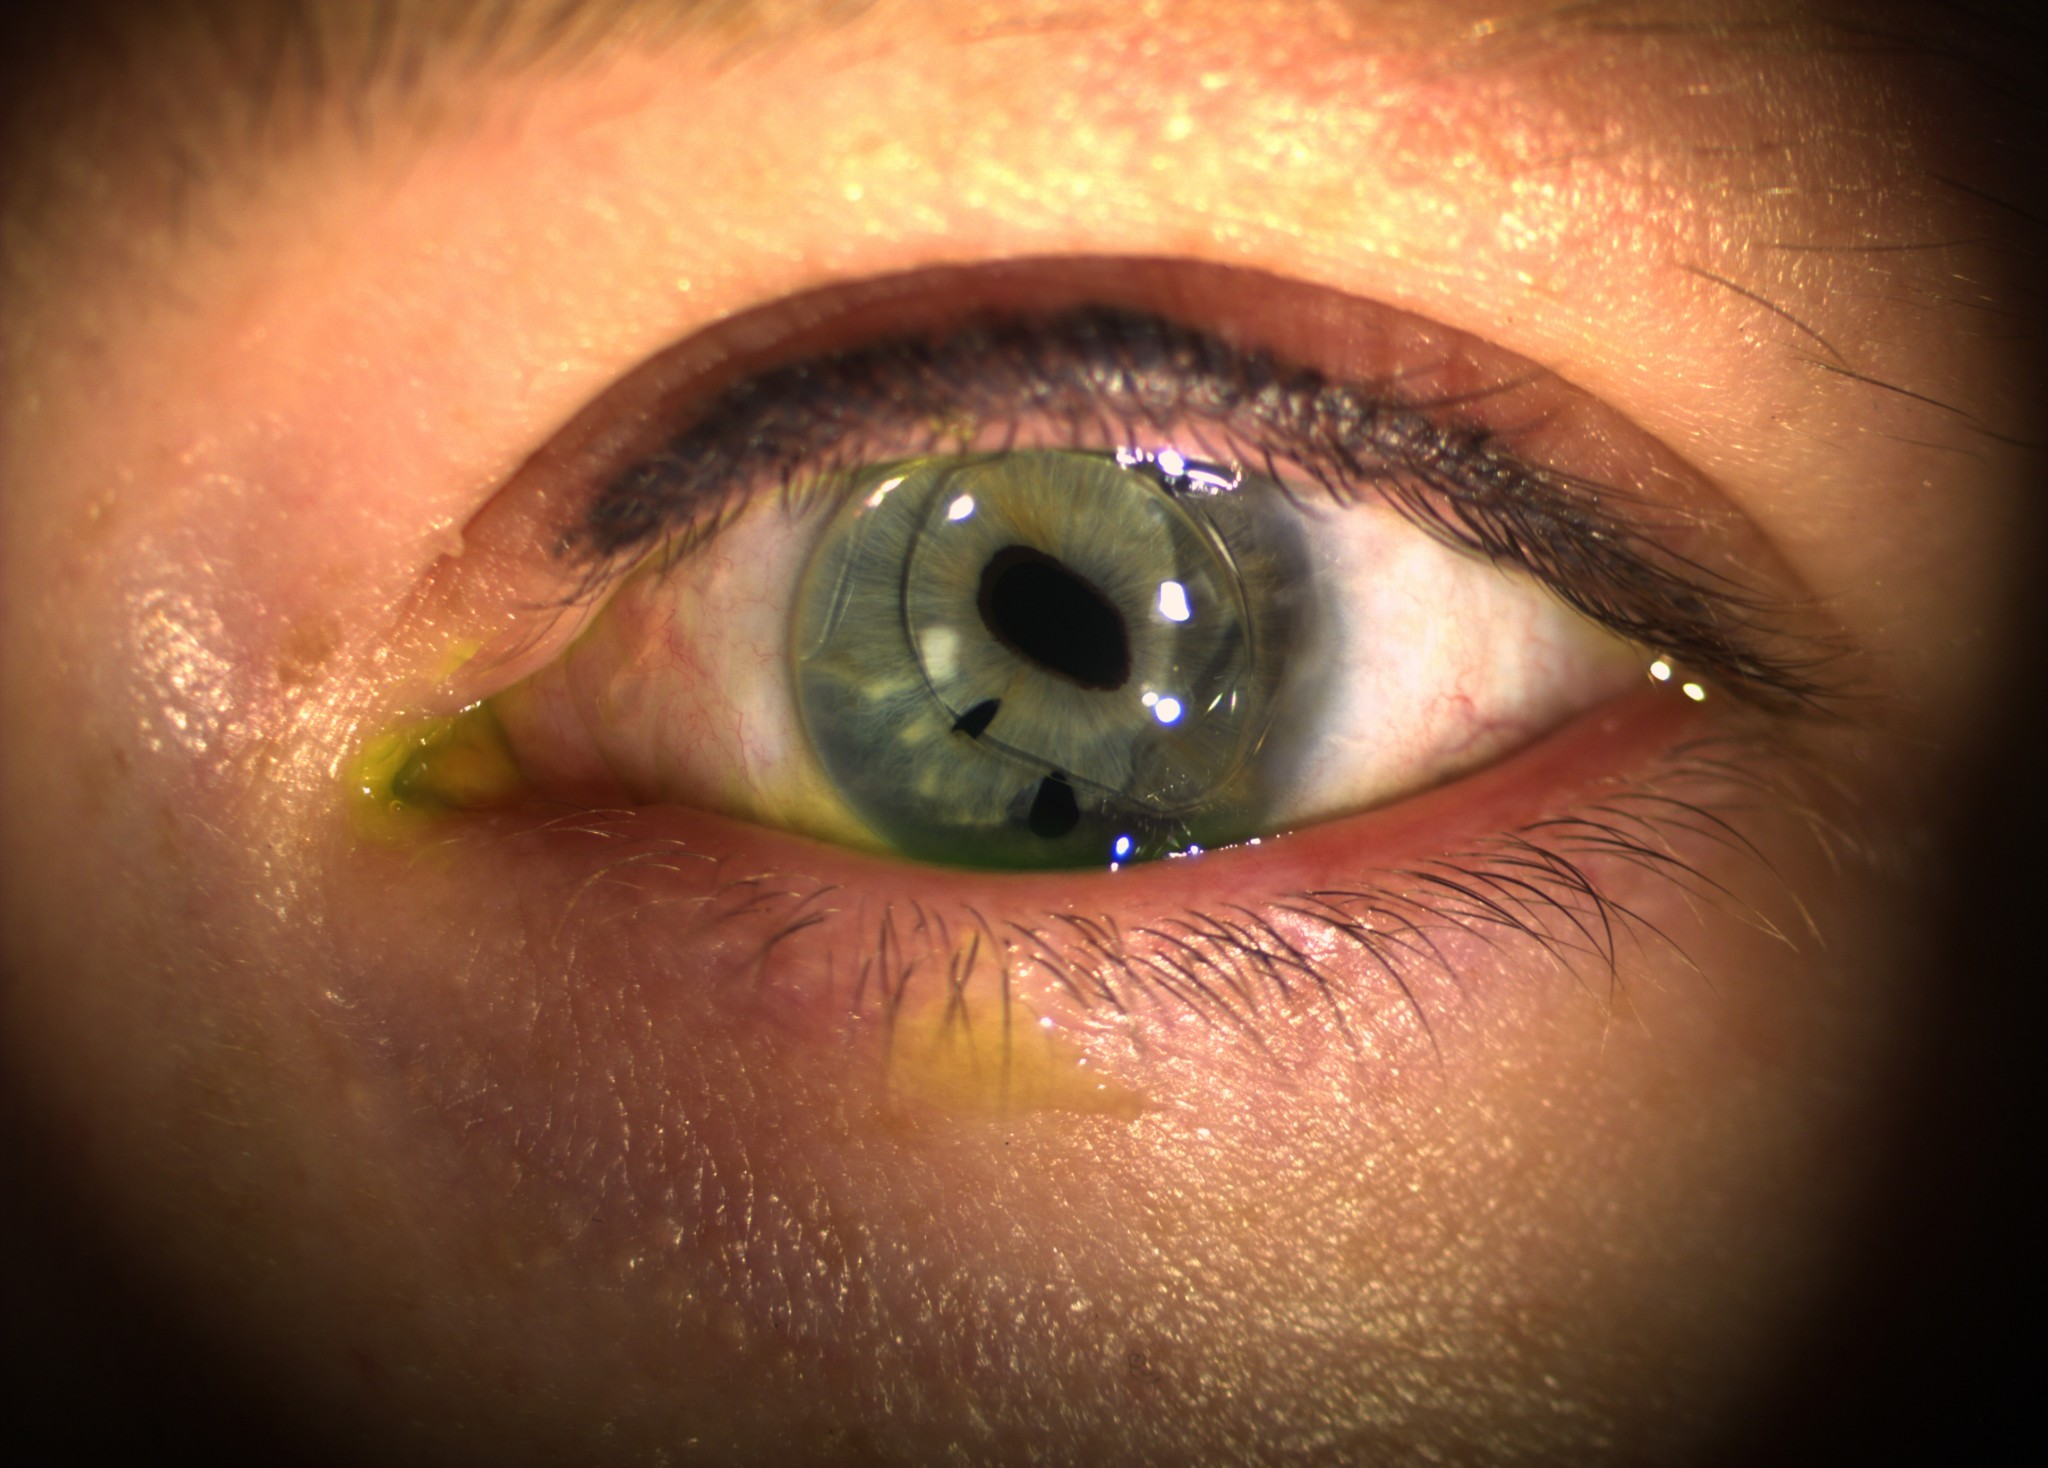 EyeSpace Bespoke Bitoric lens fitted over anterior intraocular lens on the left eye.